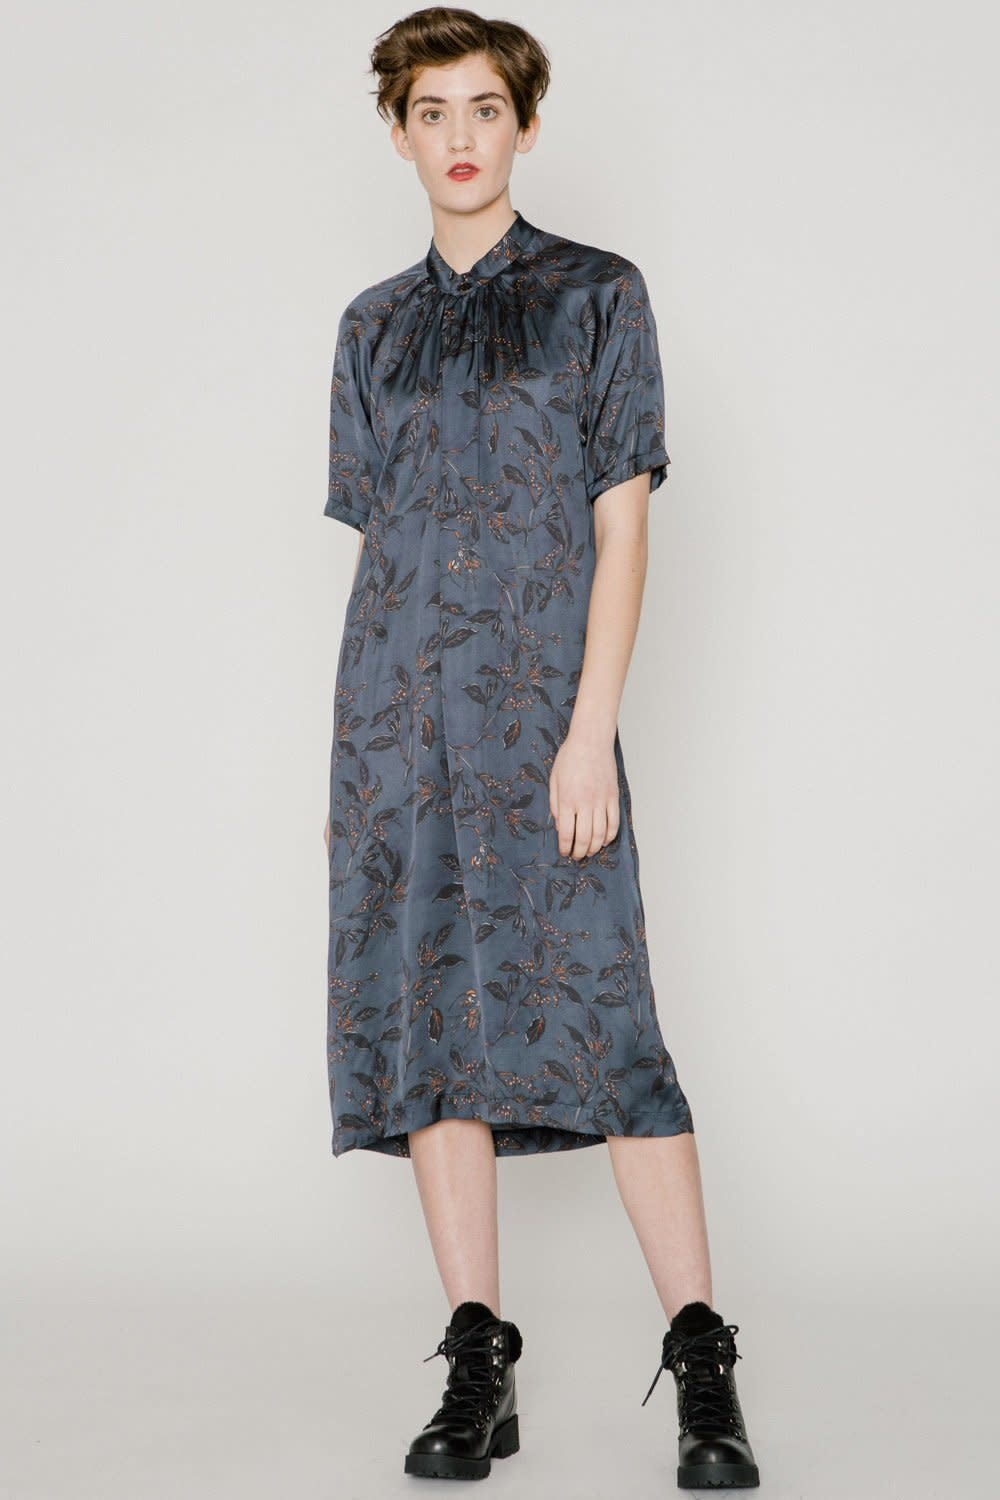 Allison Wonderland Allison Wonderland - Emerson Dress